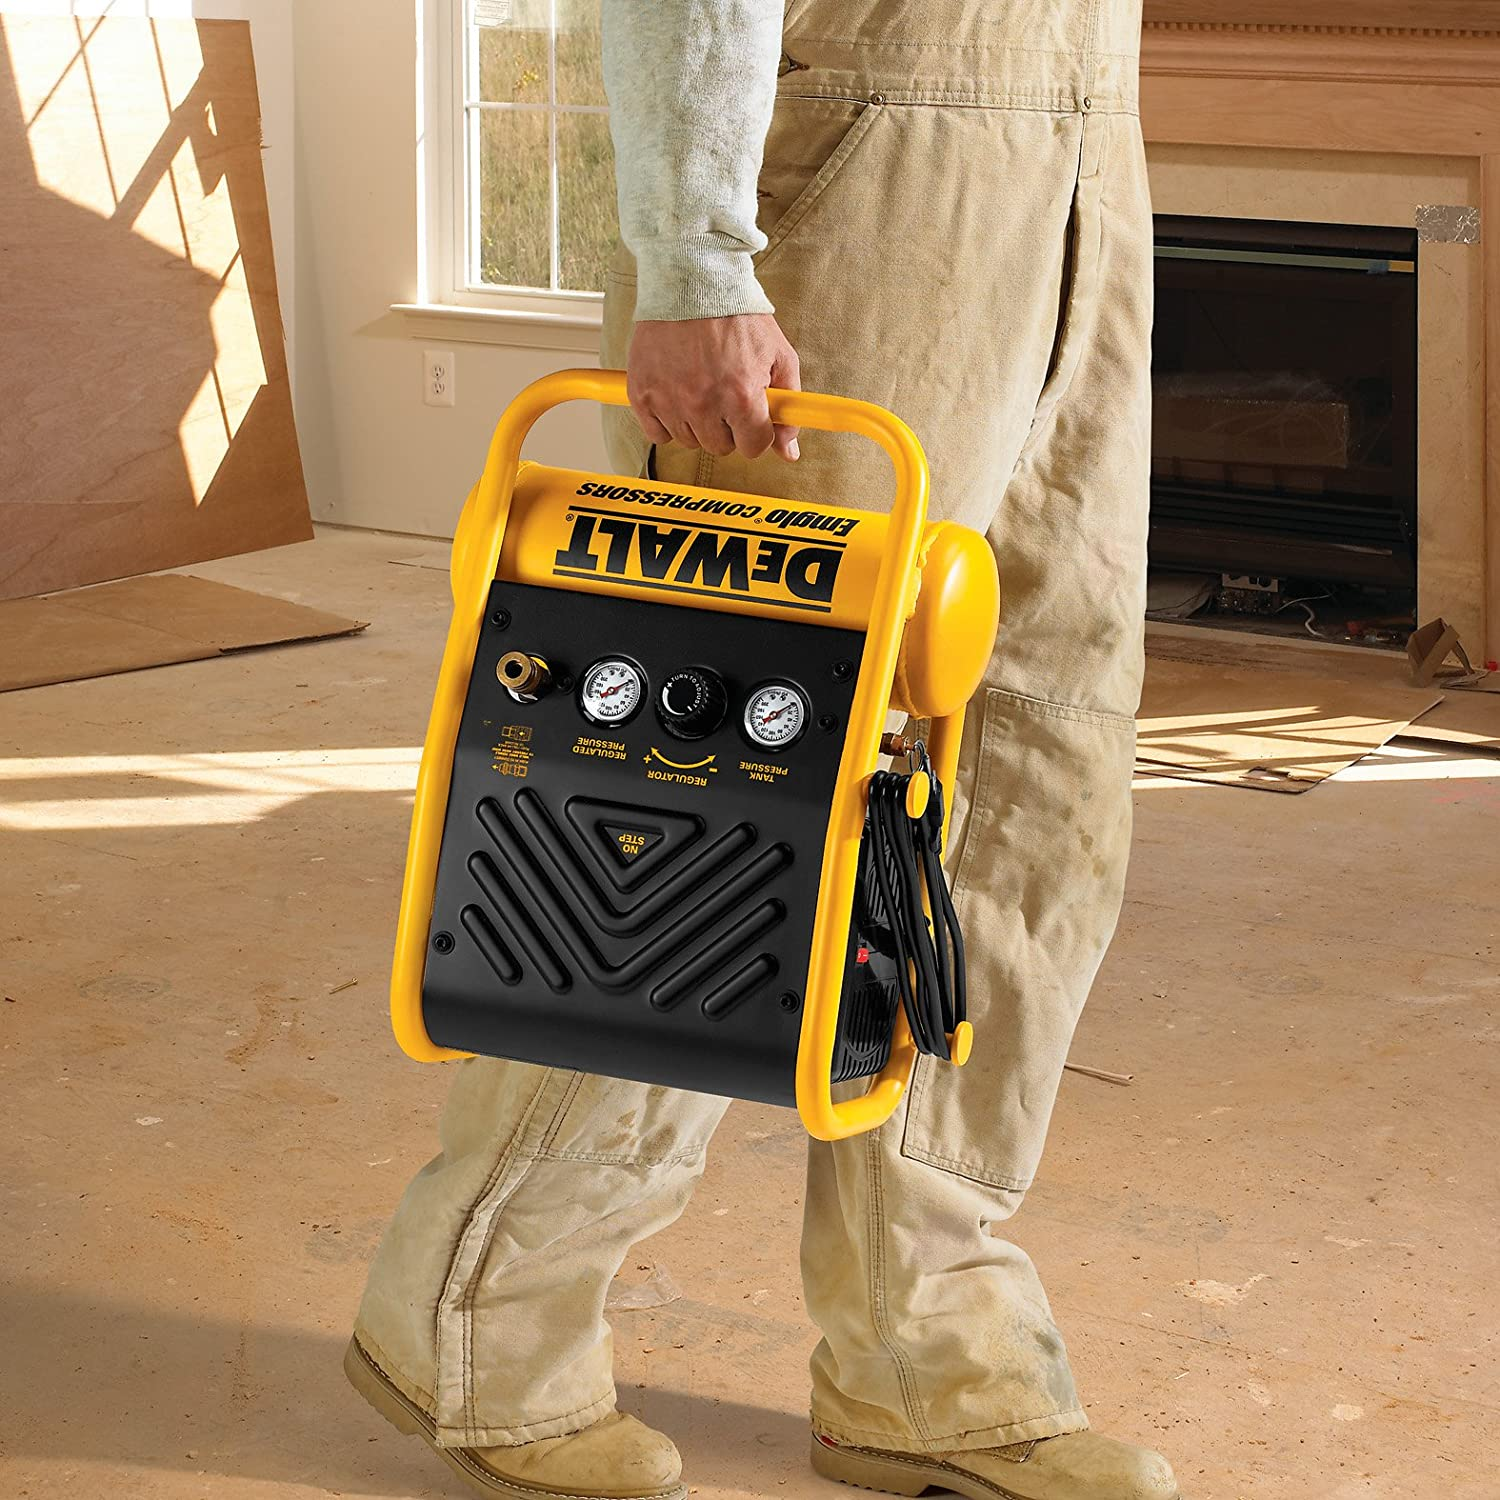 dewalt portable air compressor use1